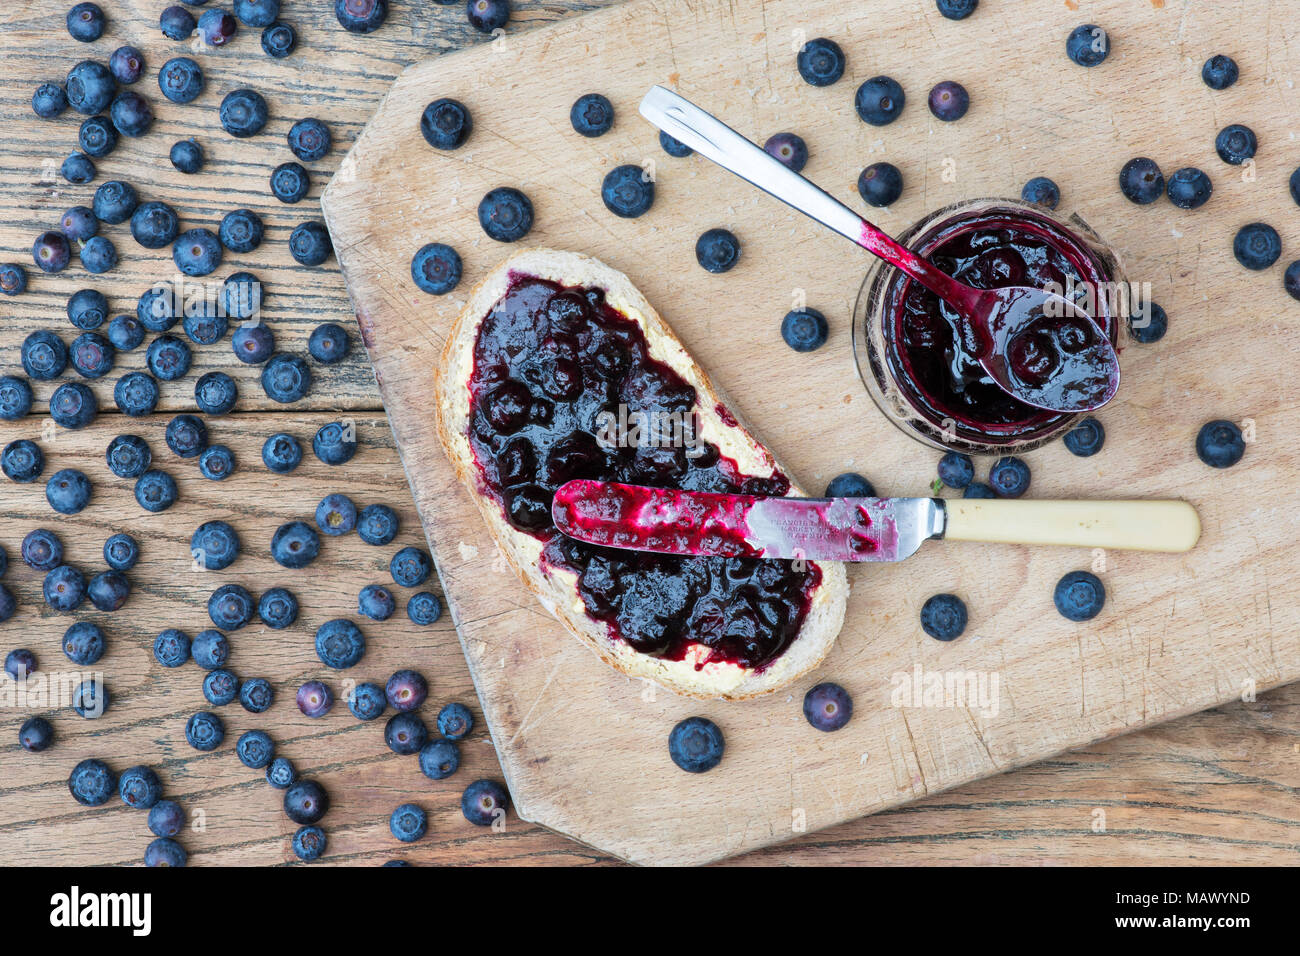 Homemade Blueberry jam and bread on a wood background - Stock Image